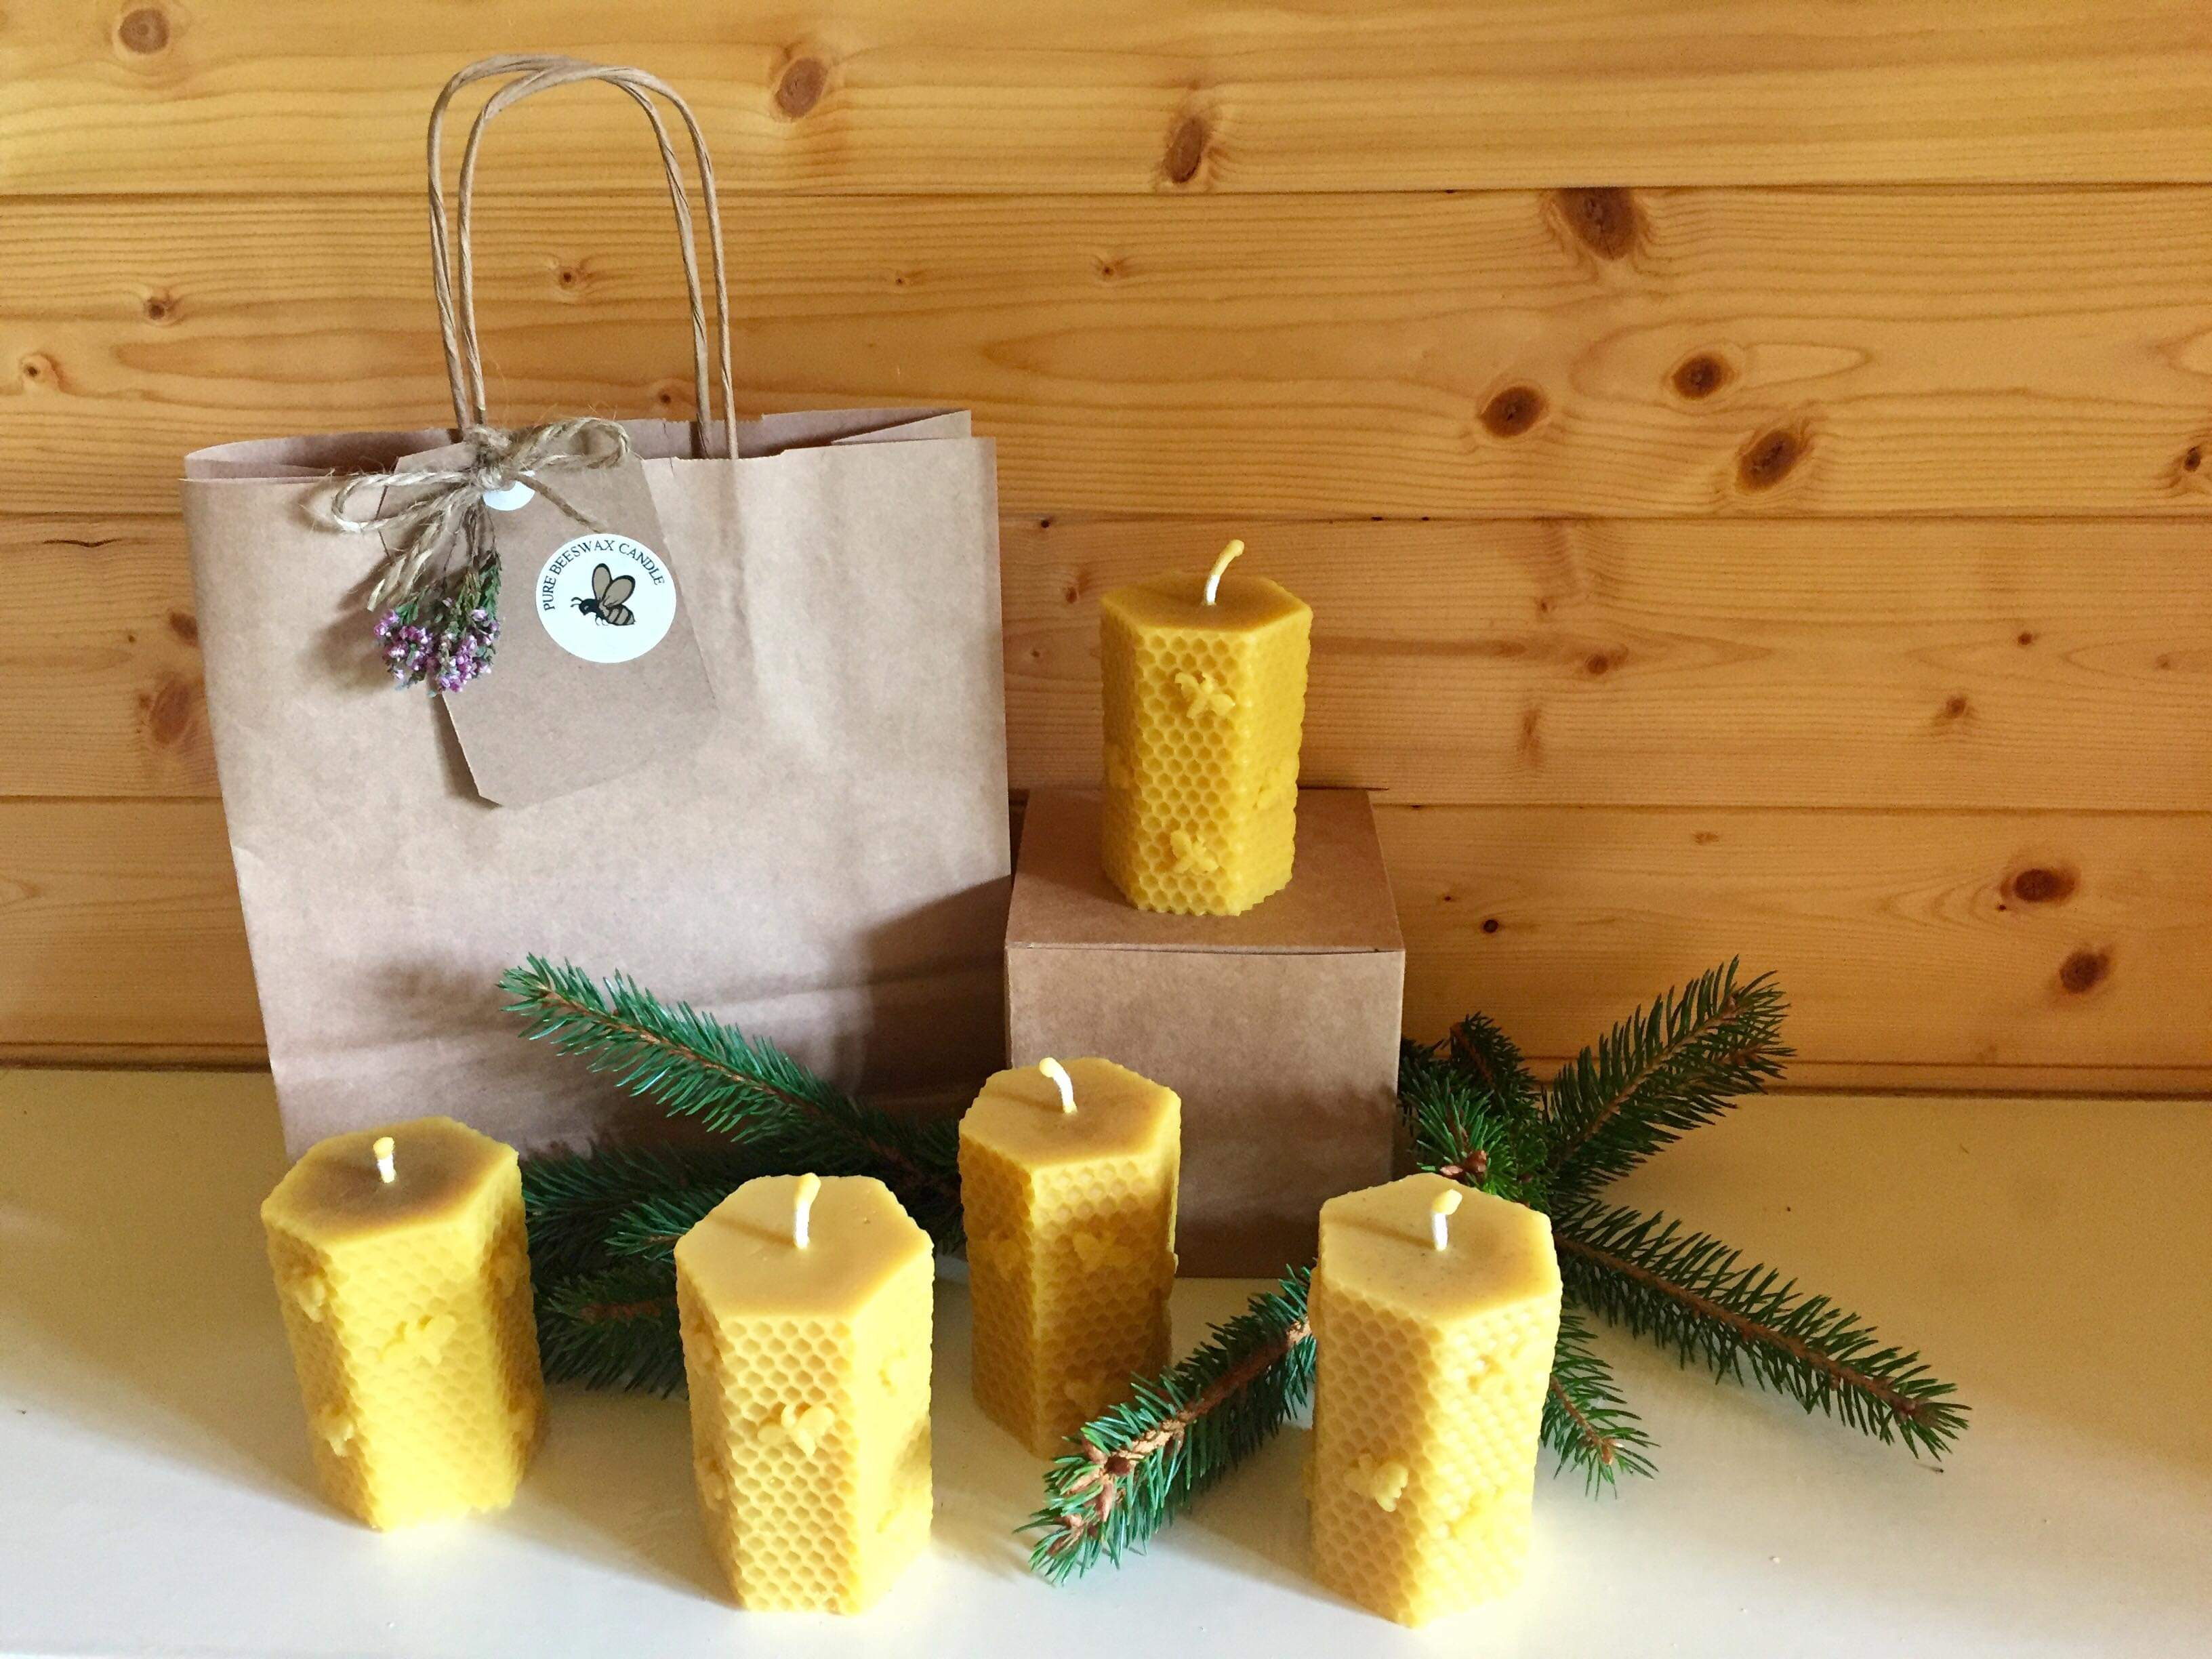 Hexagonal Beeswax Candle